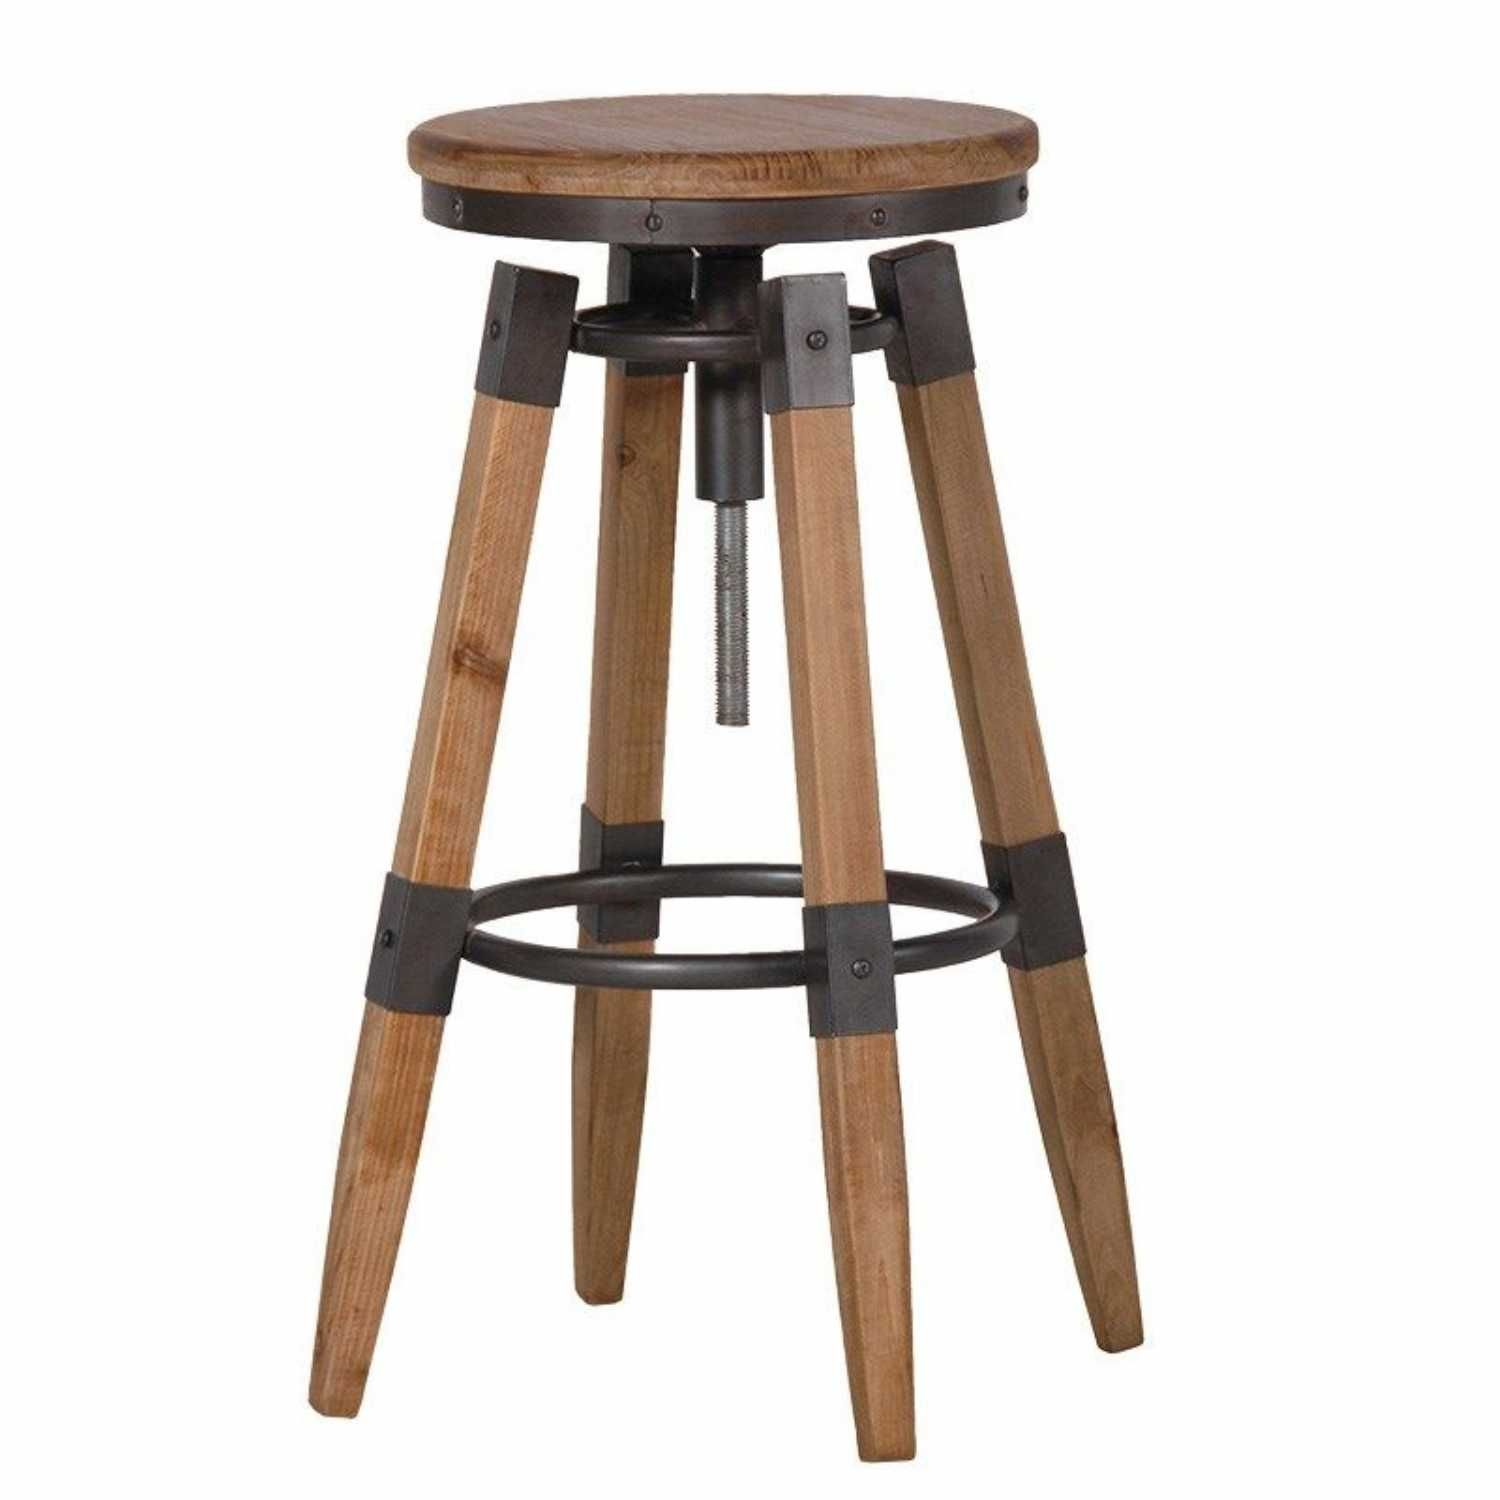 Set Of 4 Adjustable Urban Chic Wood Metal Kitchen Breakfast Bar Stools